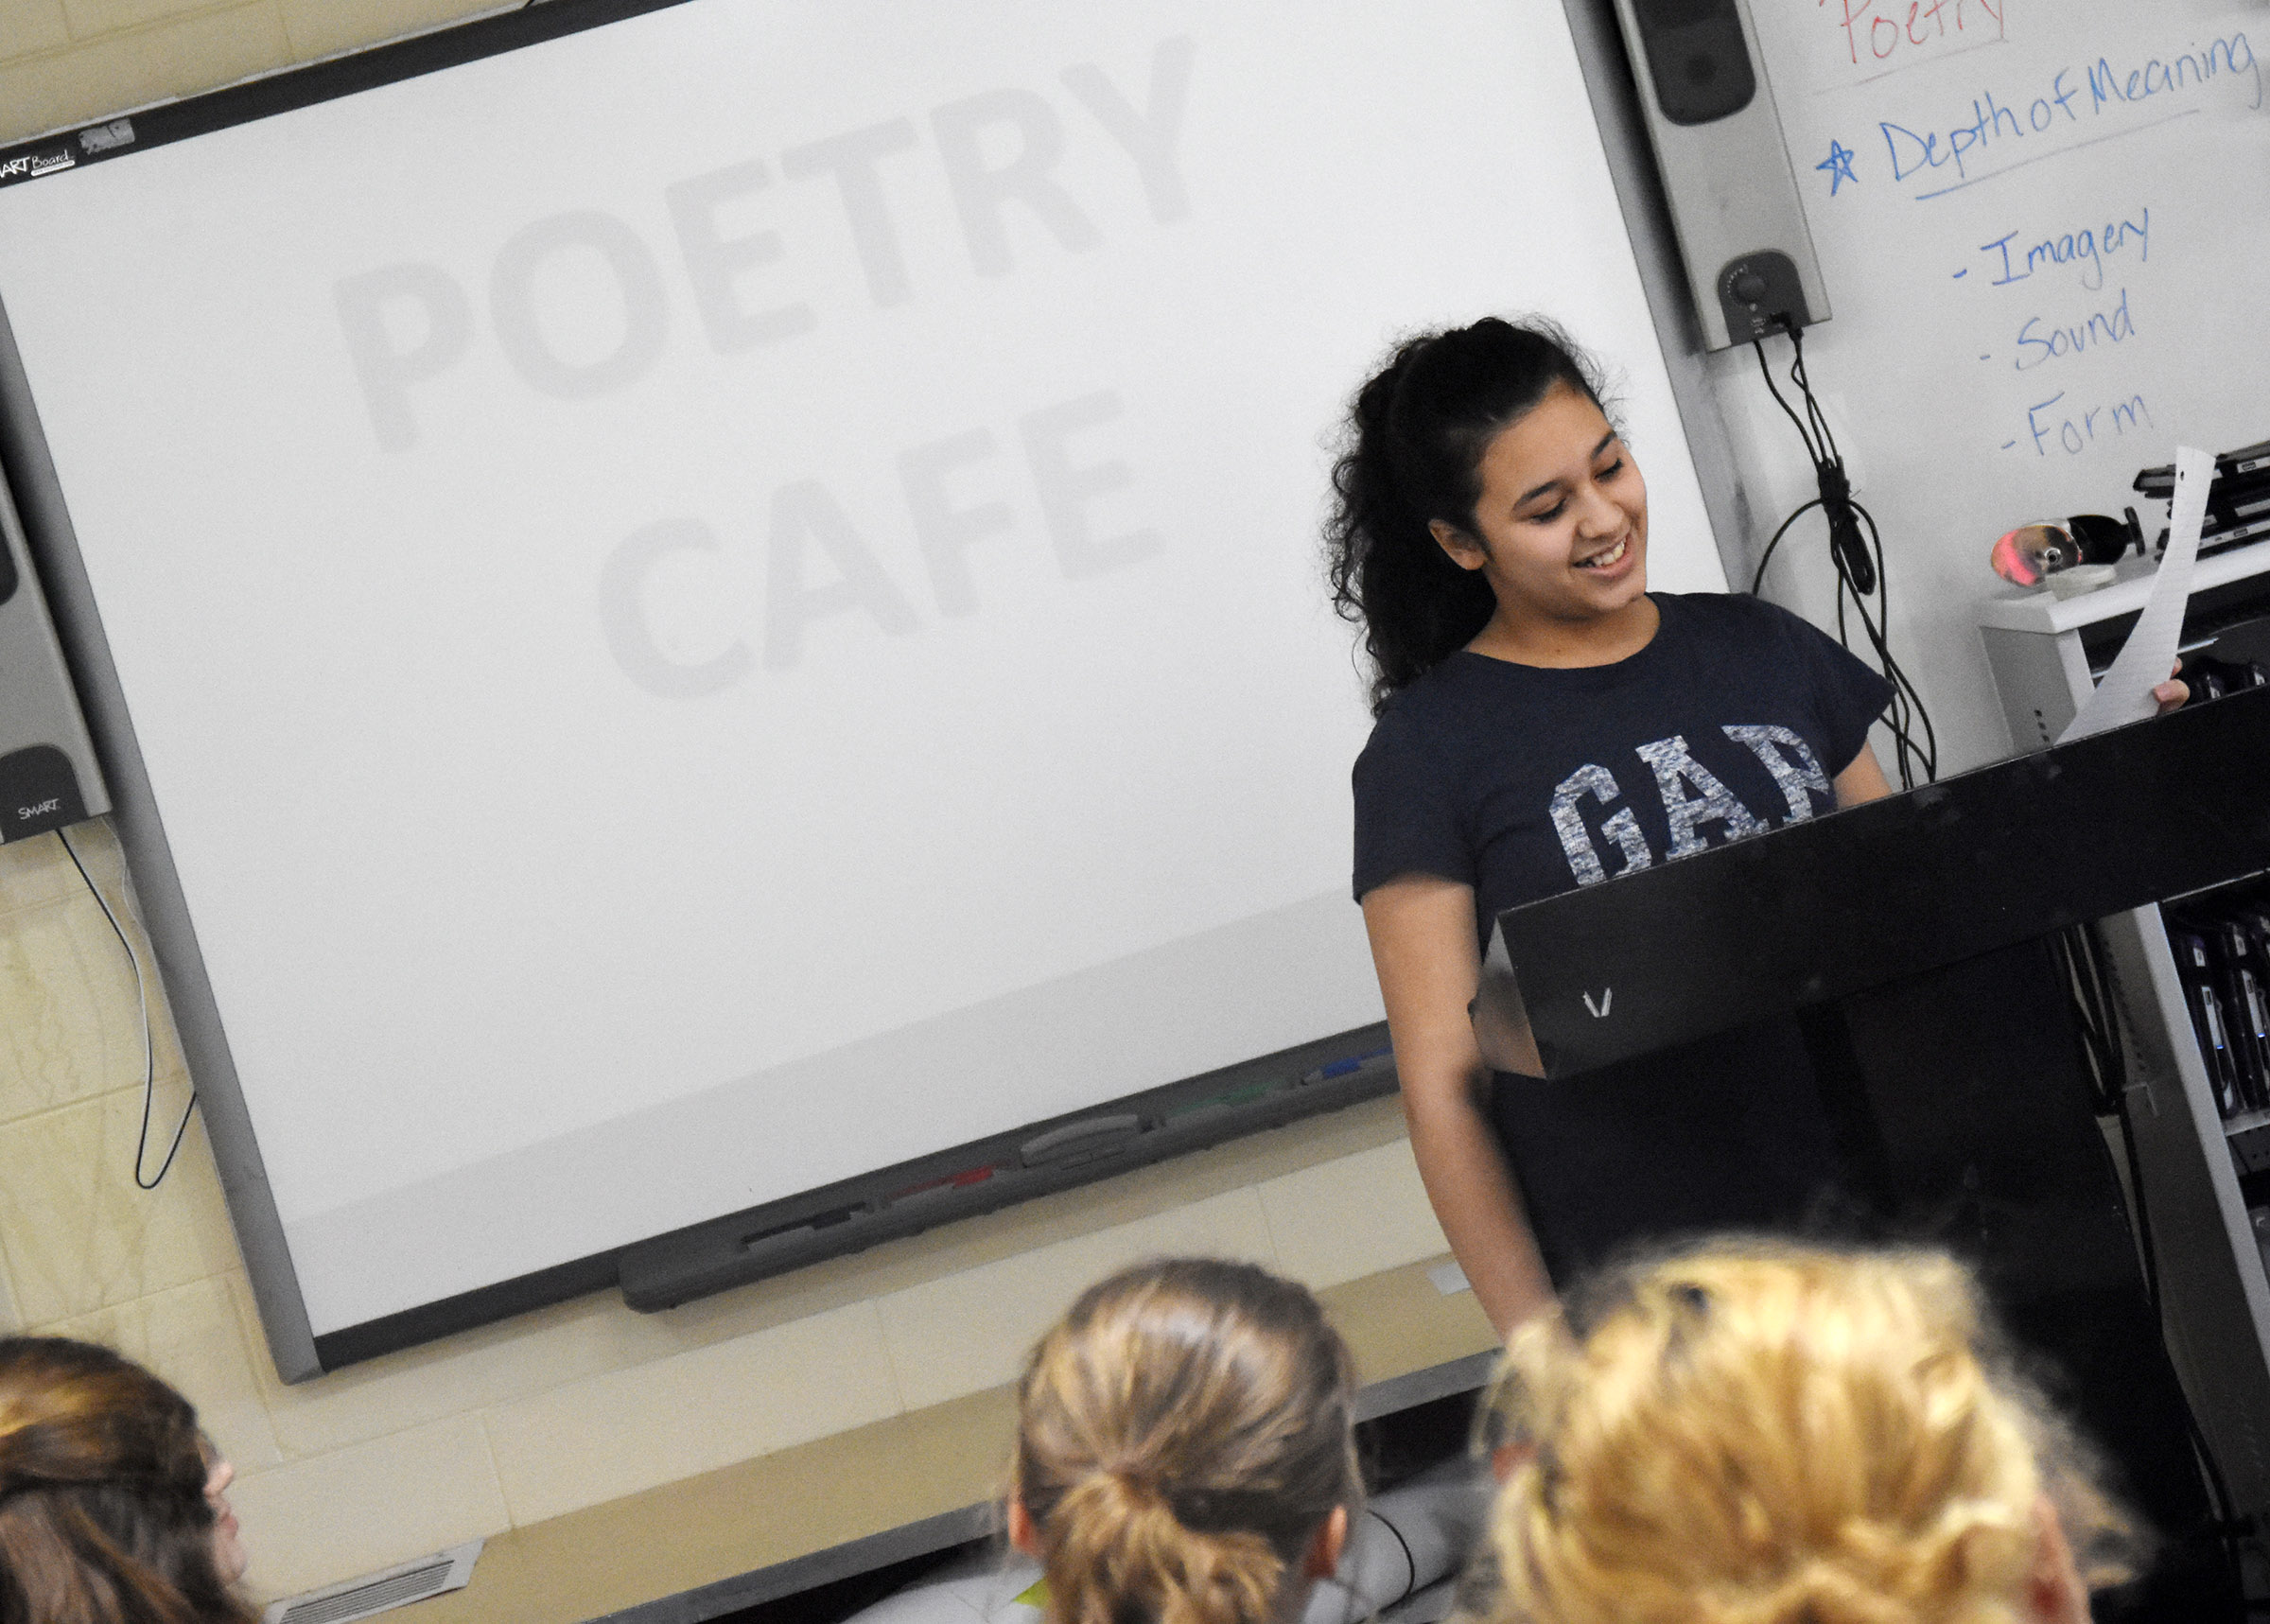 Campbellsville Middle School eighth-grader Bia Moura reads her poetry.